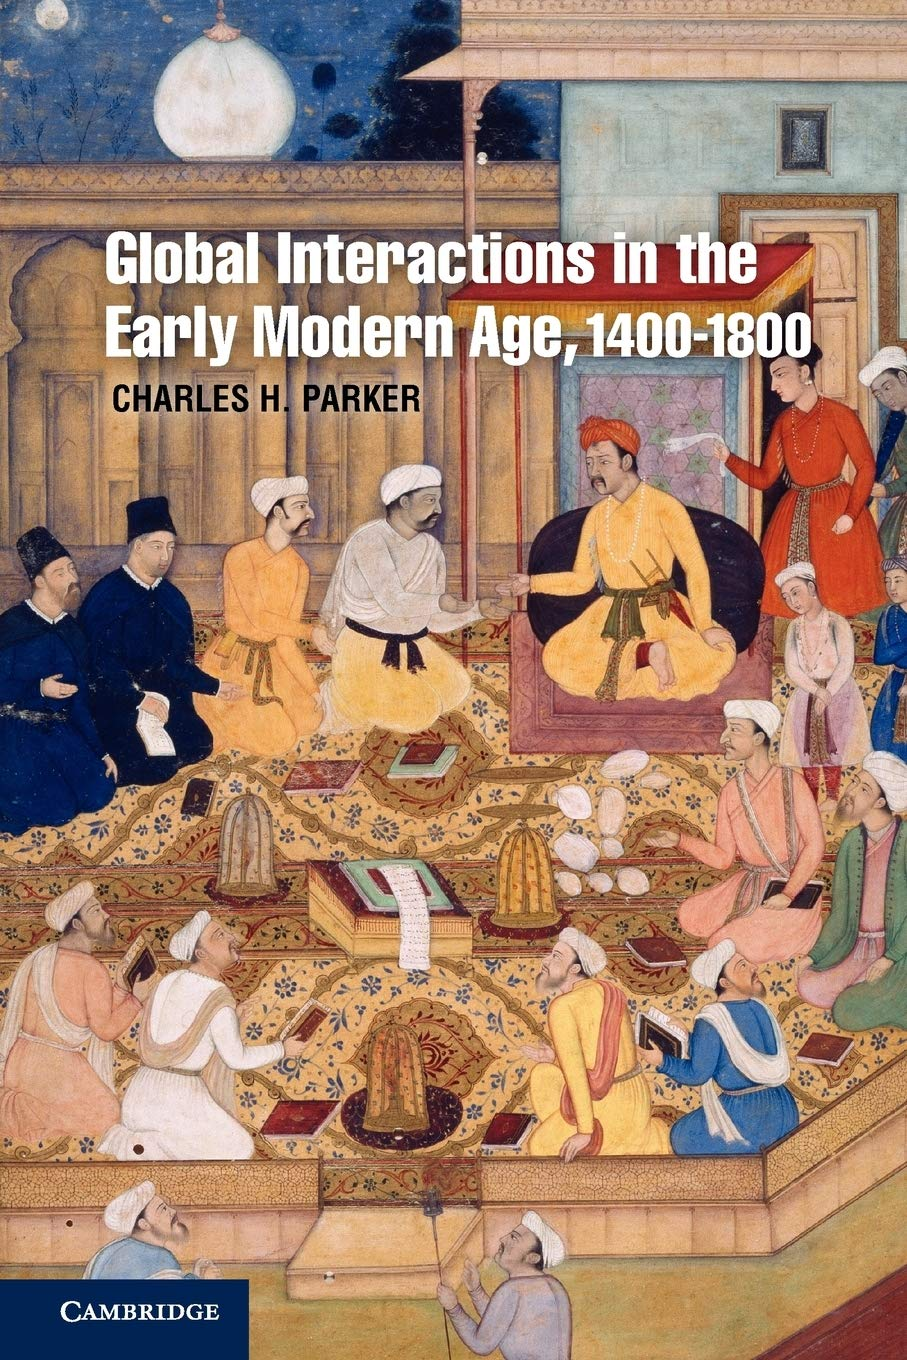 Global Interactions In The Early Modern Age, 1400 -1800 (Cambridge Essential Histories)